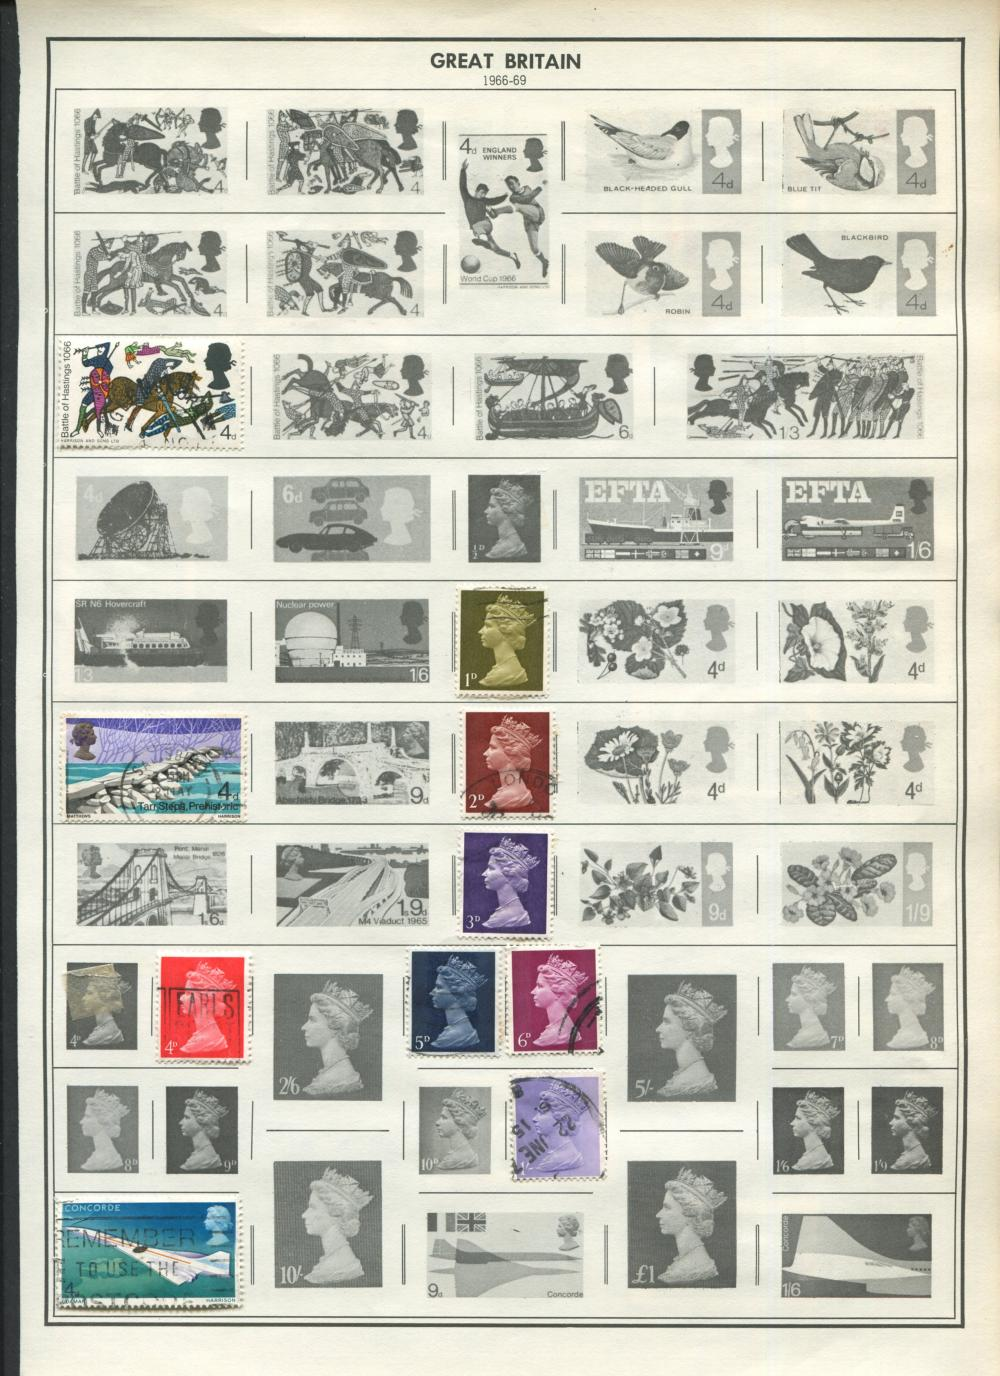 Great Britain Stamp Collection From 1860